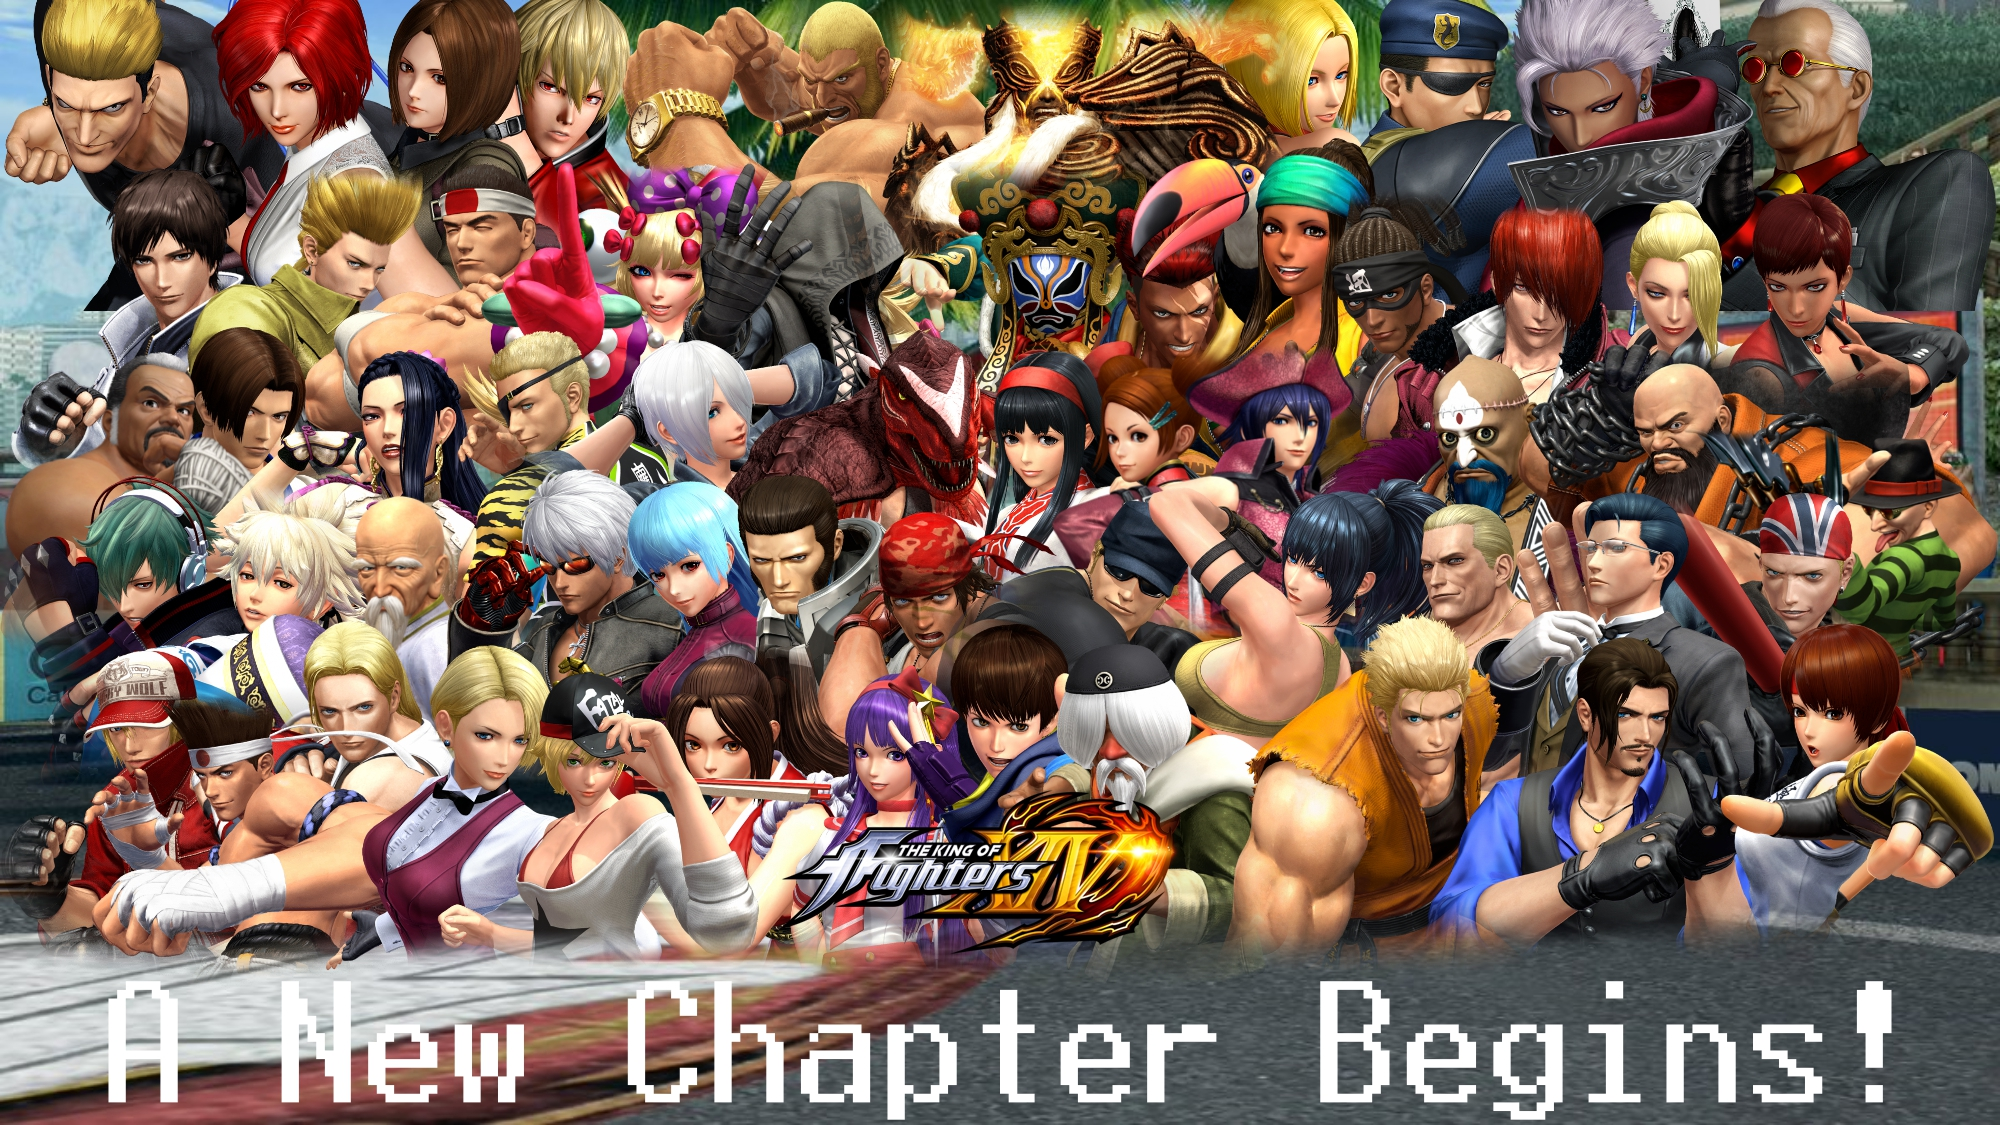 The King Of Fighters Xiv Roster Wallpaper By Yoink17 On Deviantart